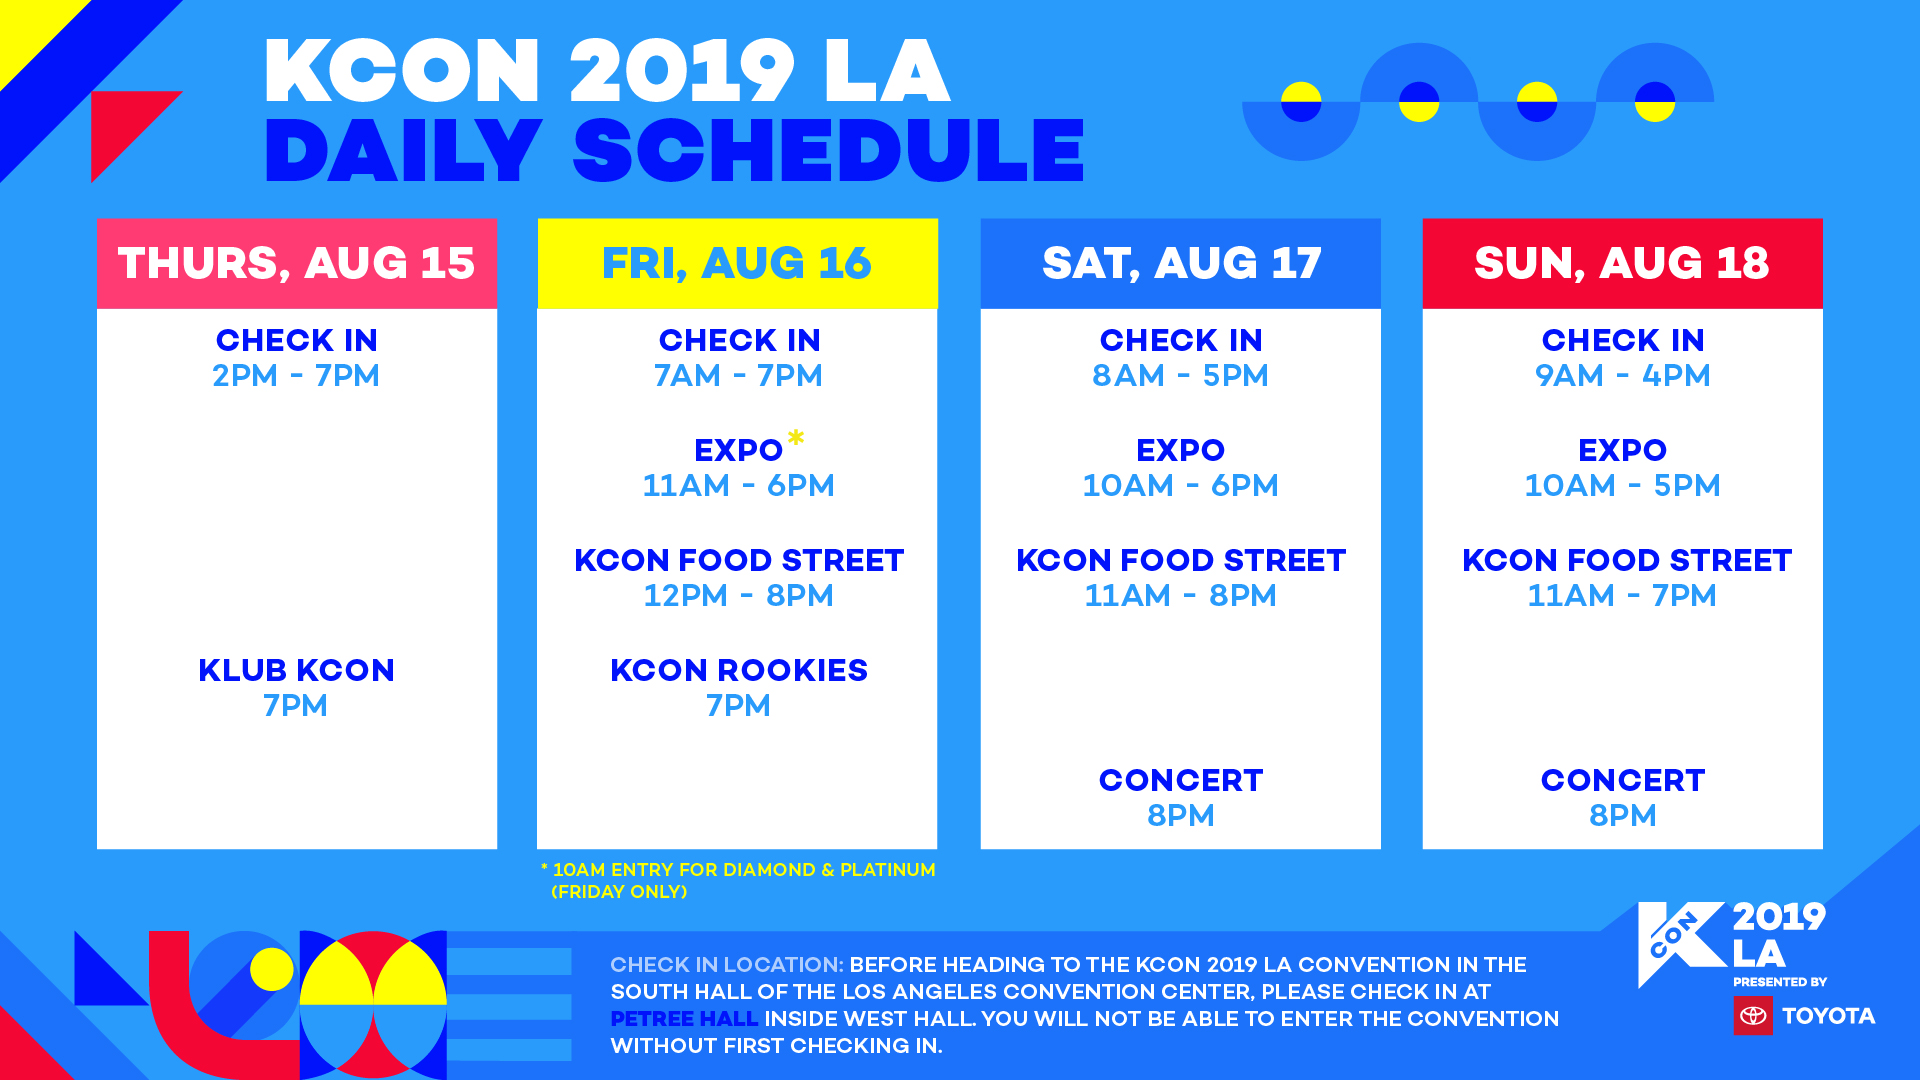 KCON LA - Schedule - KCON USA OFFICIAL SITE